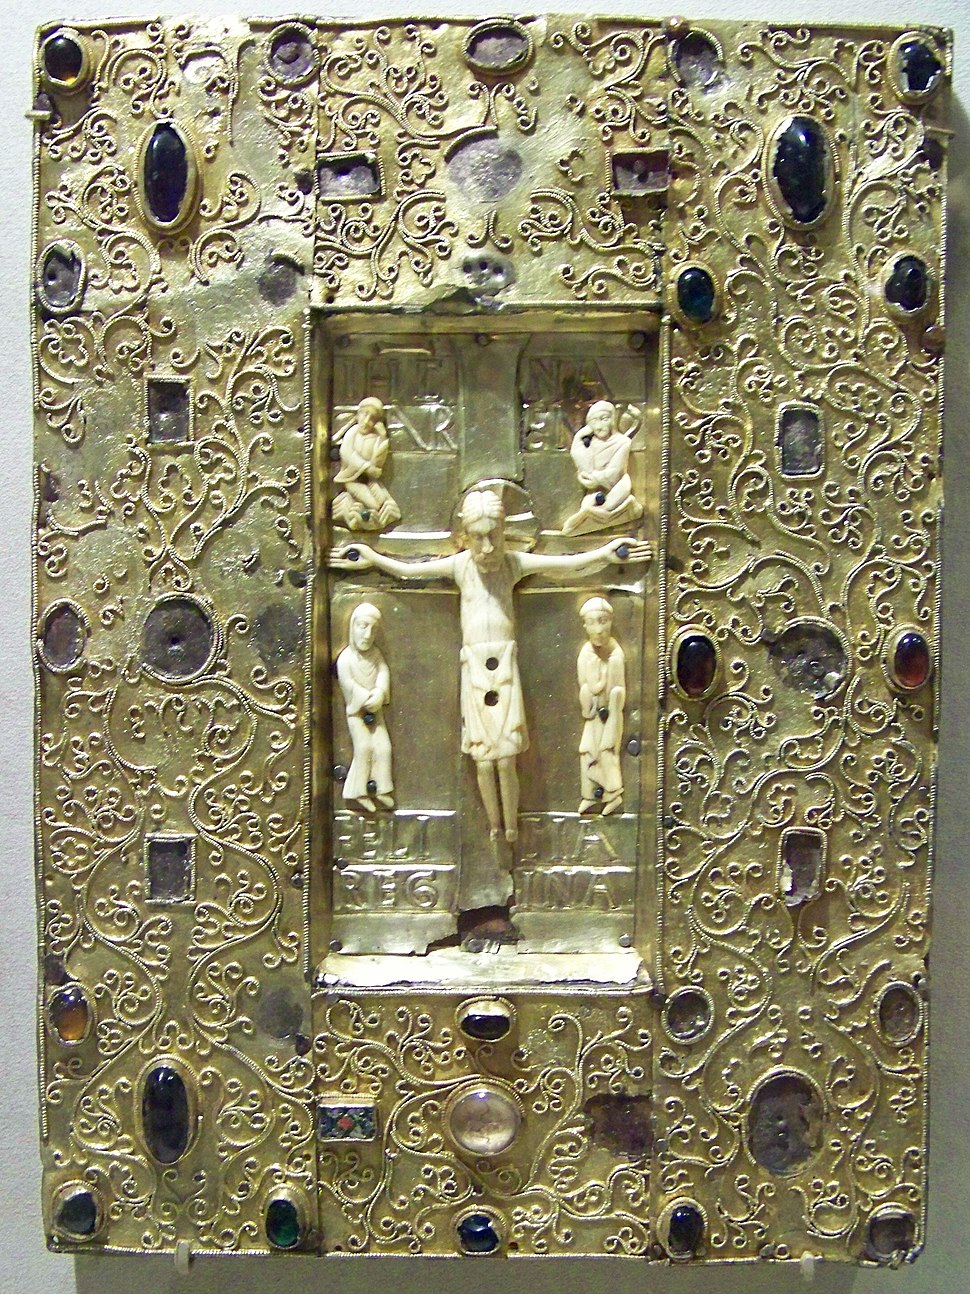 WLA metmuseum Book Cover with Byzantine Icon of the Crucifixion 6